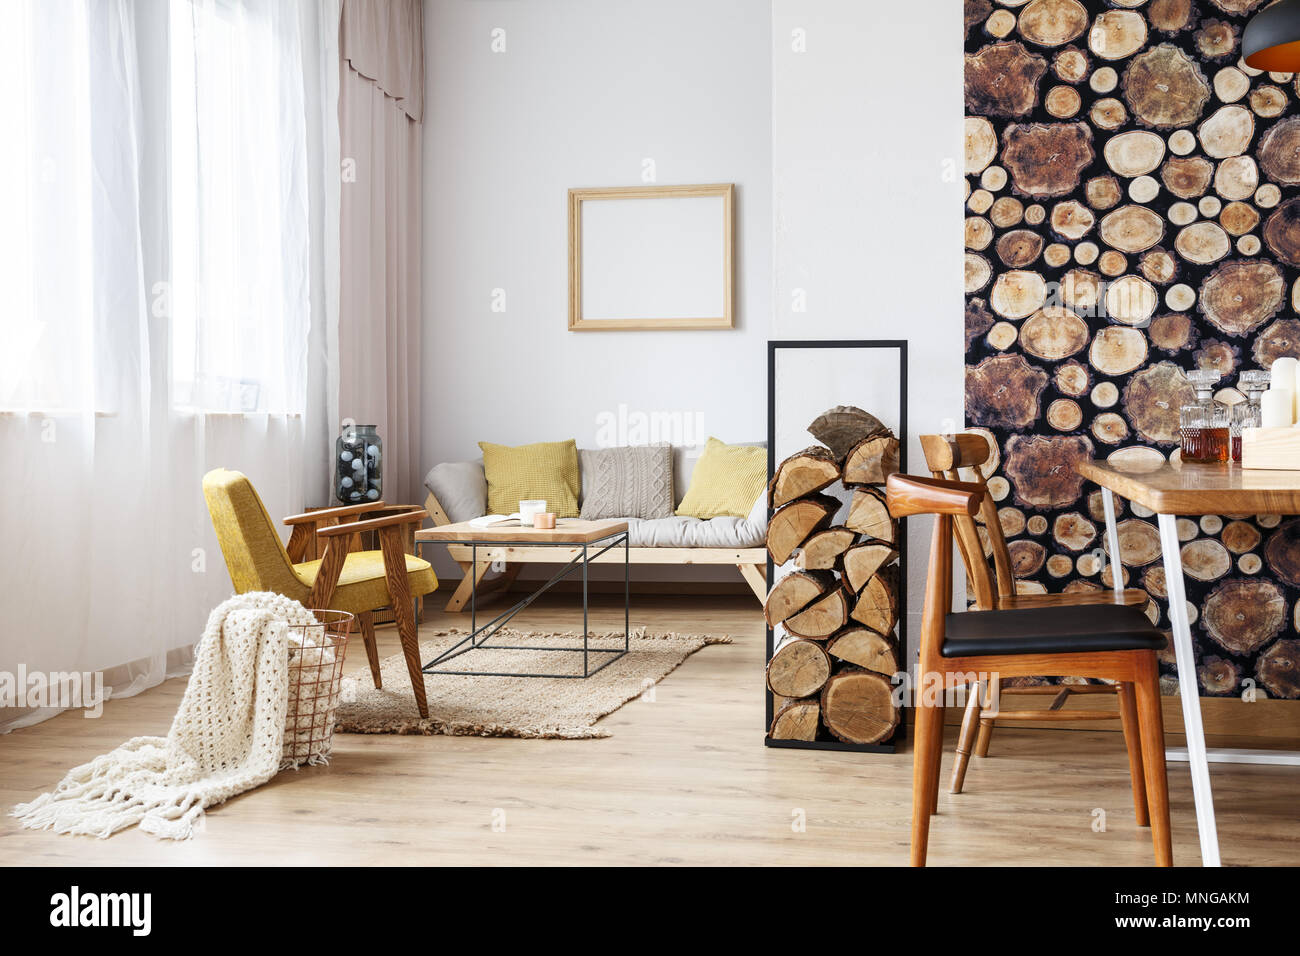 Design of multifunctional interior with natural wooden decor and minimalist modern furniture - Stock Image